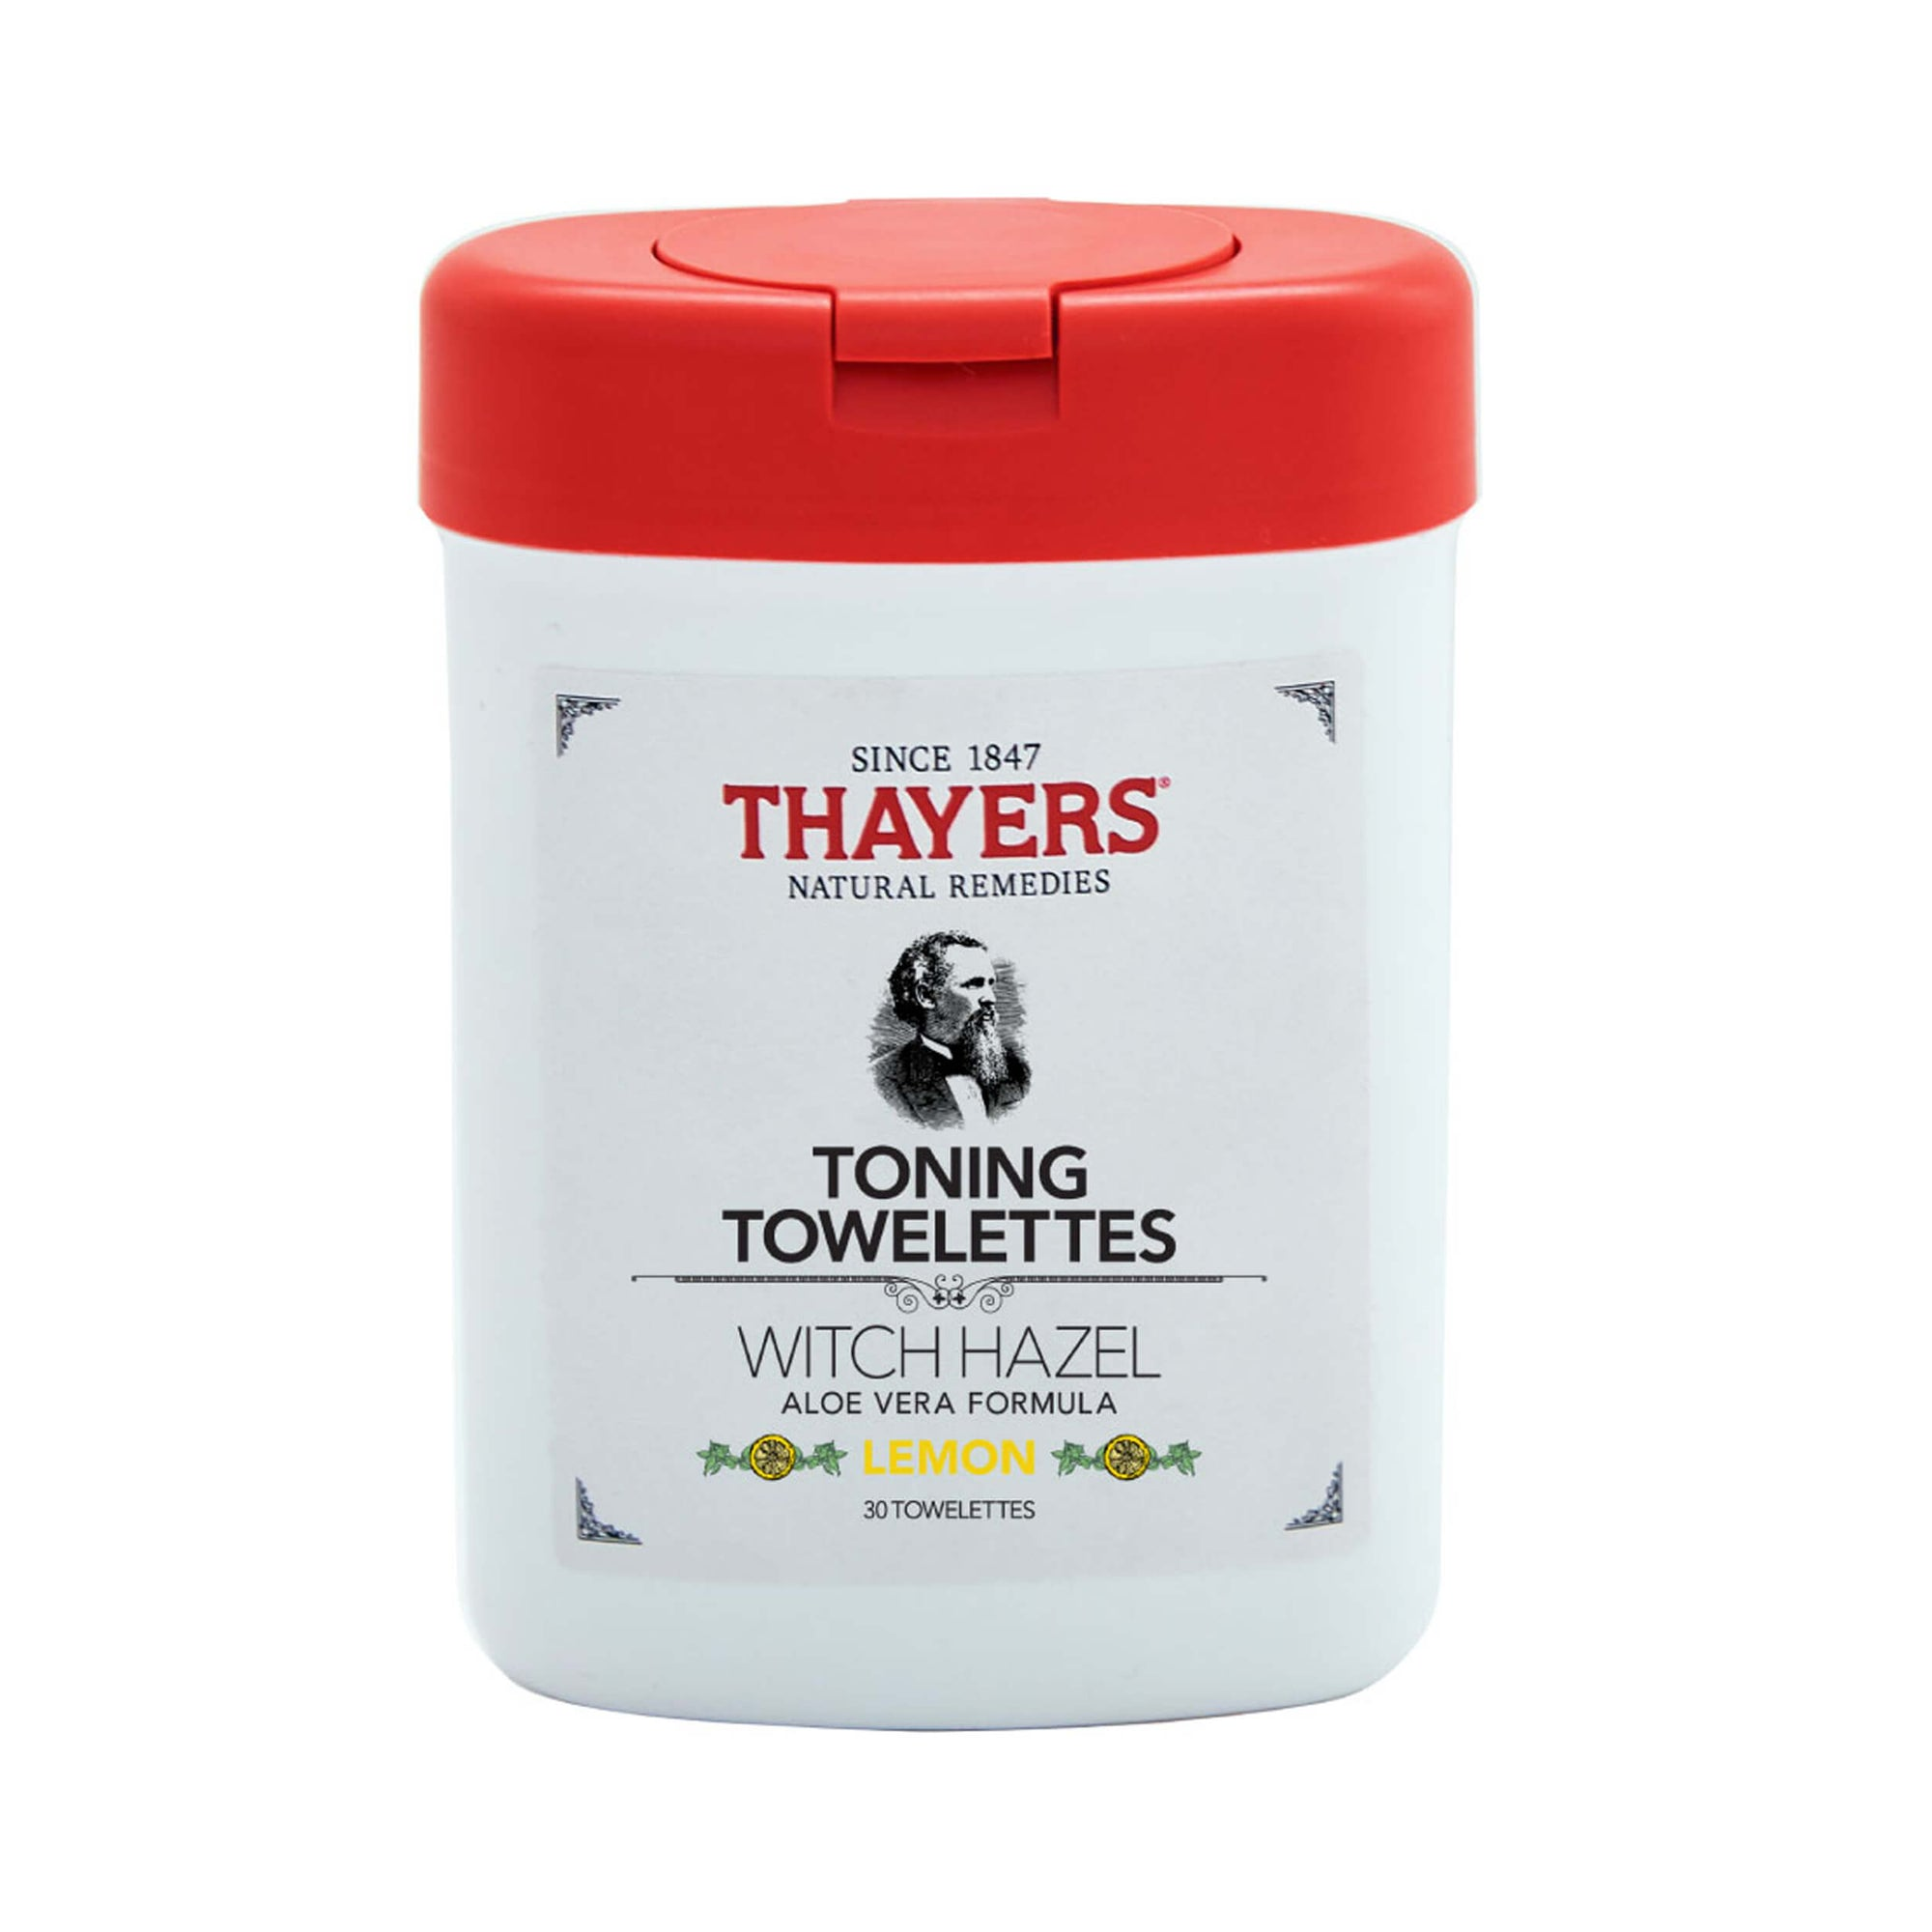 Thayers Witch Hazel Toning Towelettes Lemon Closed